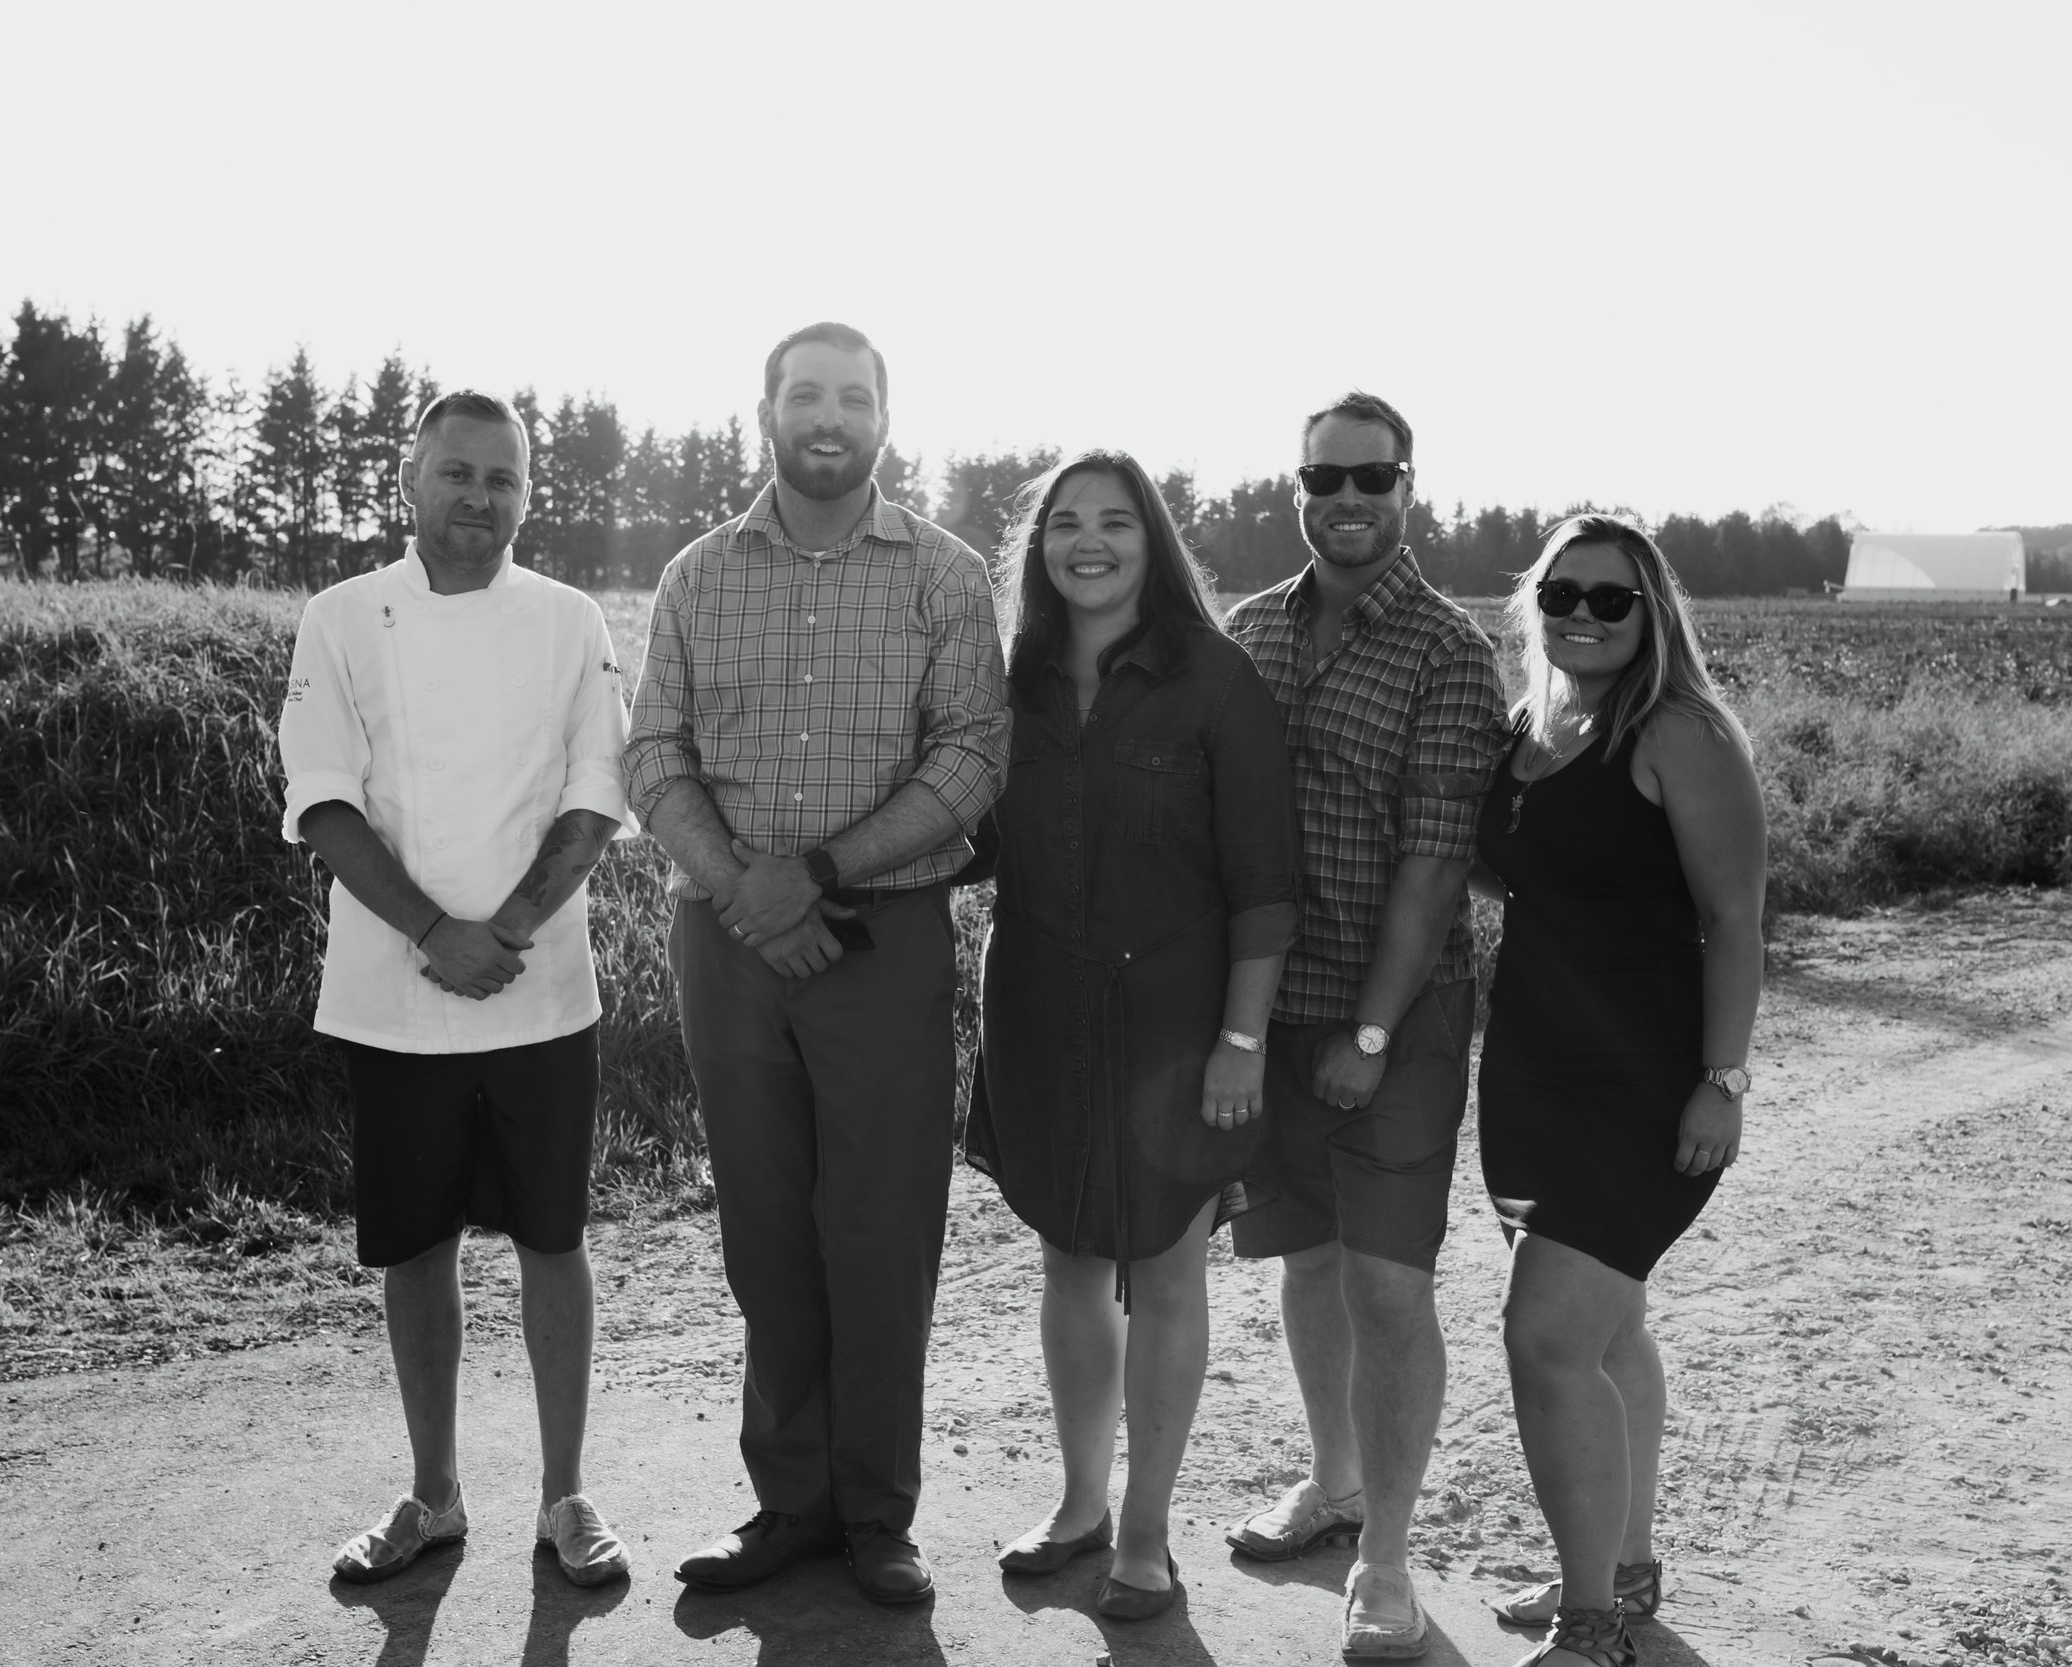 Chef Randy Felker of  Rosina , Luke and Alison Charbonneau of  Hi-Berry Farm , Jeff Carver and Laura McInnes of  The Wismer House